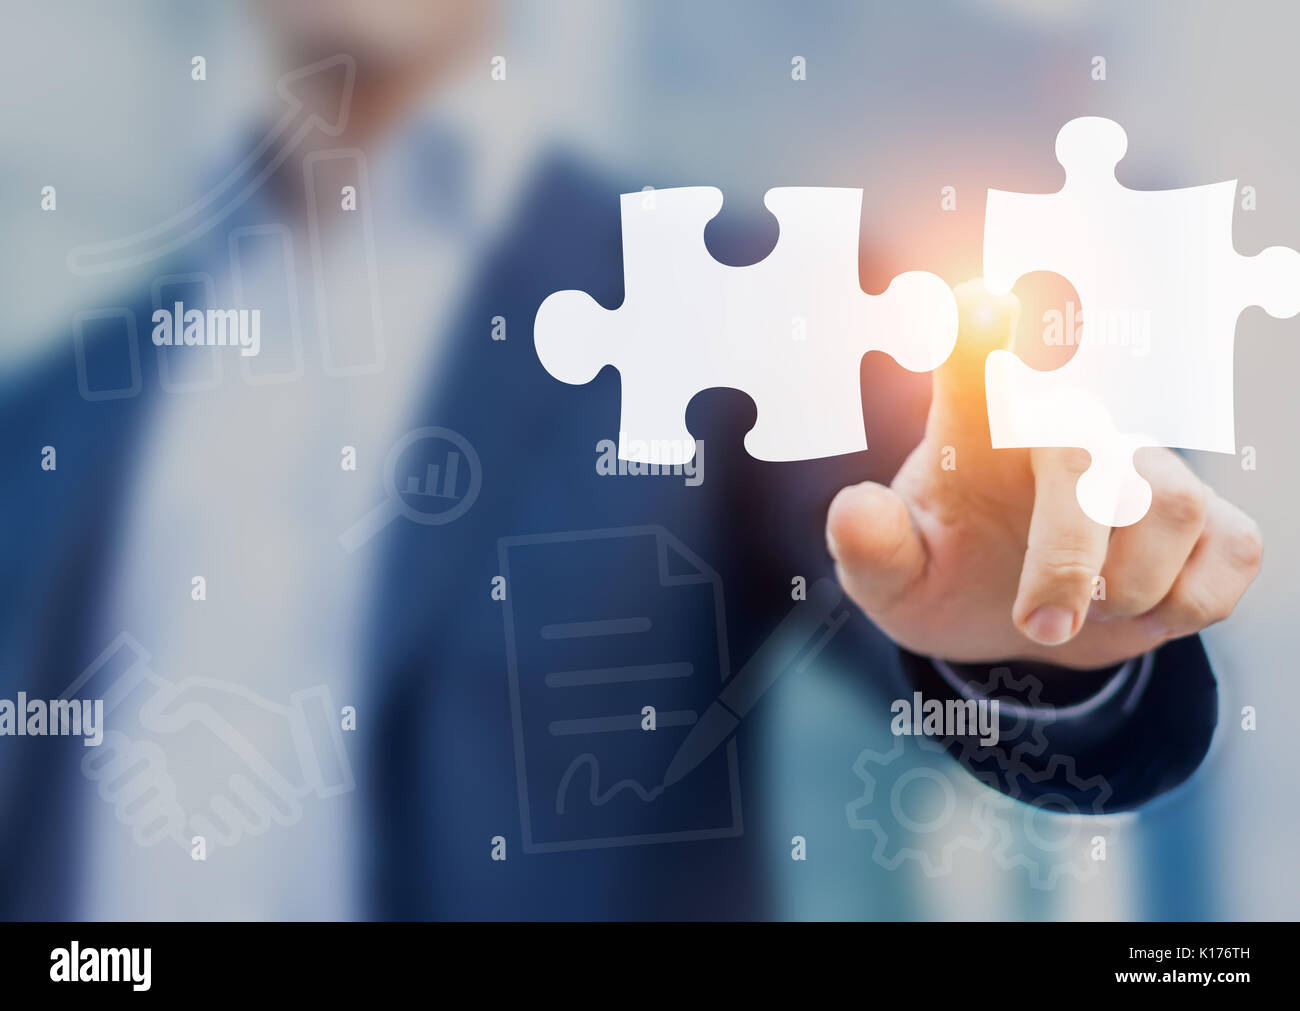 Mergers and acquisition concept with consultant touching icons of puzzle pieces representing the merging of two companies or joint venture, partnershi - Stock Image